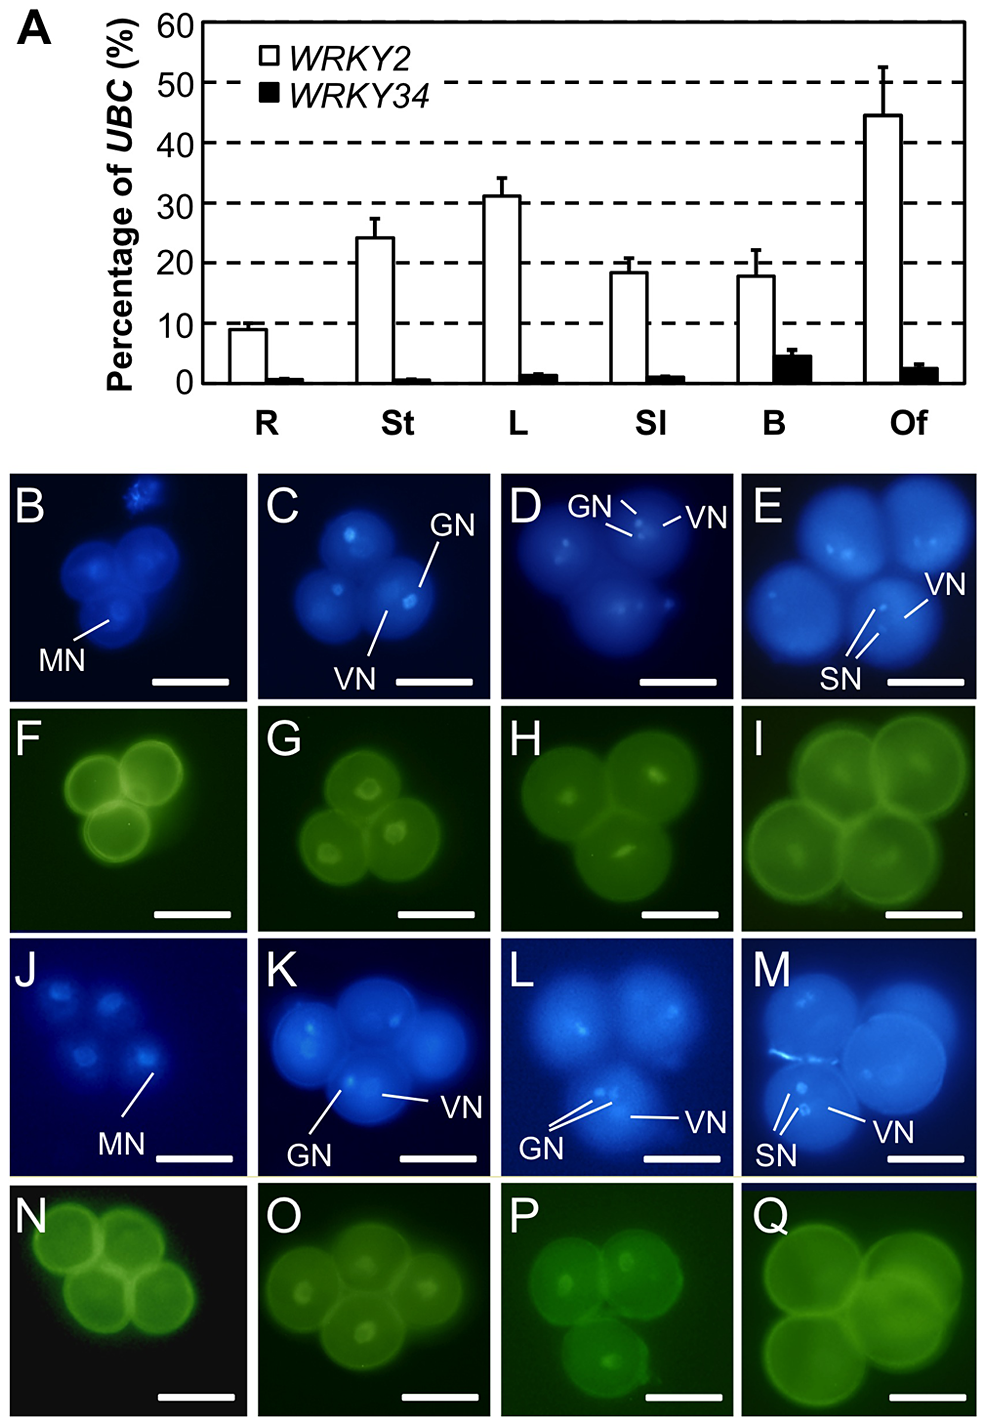 Expression and protein localization of WRKY34 and WRKY2.